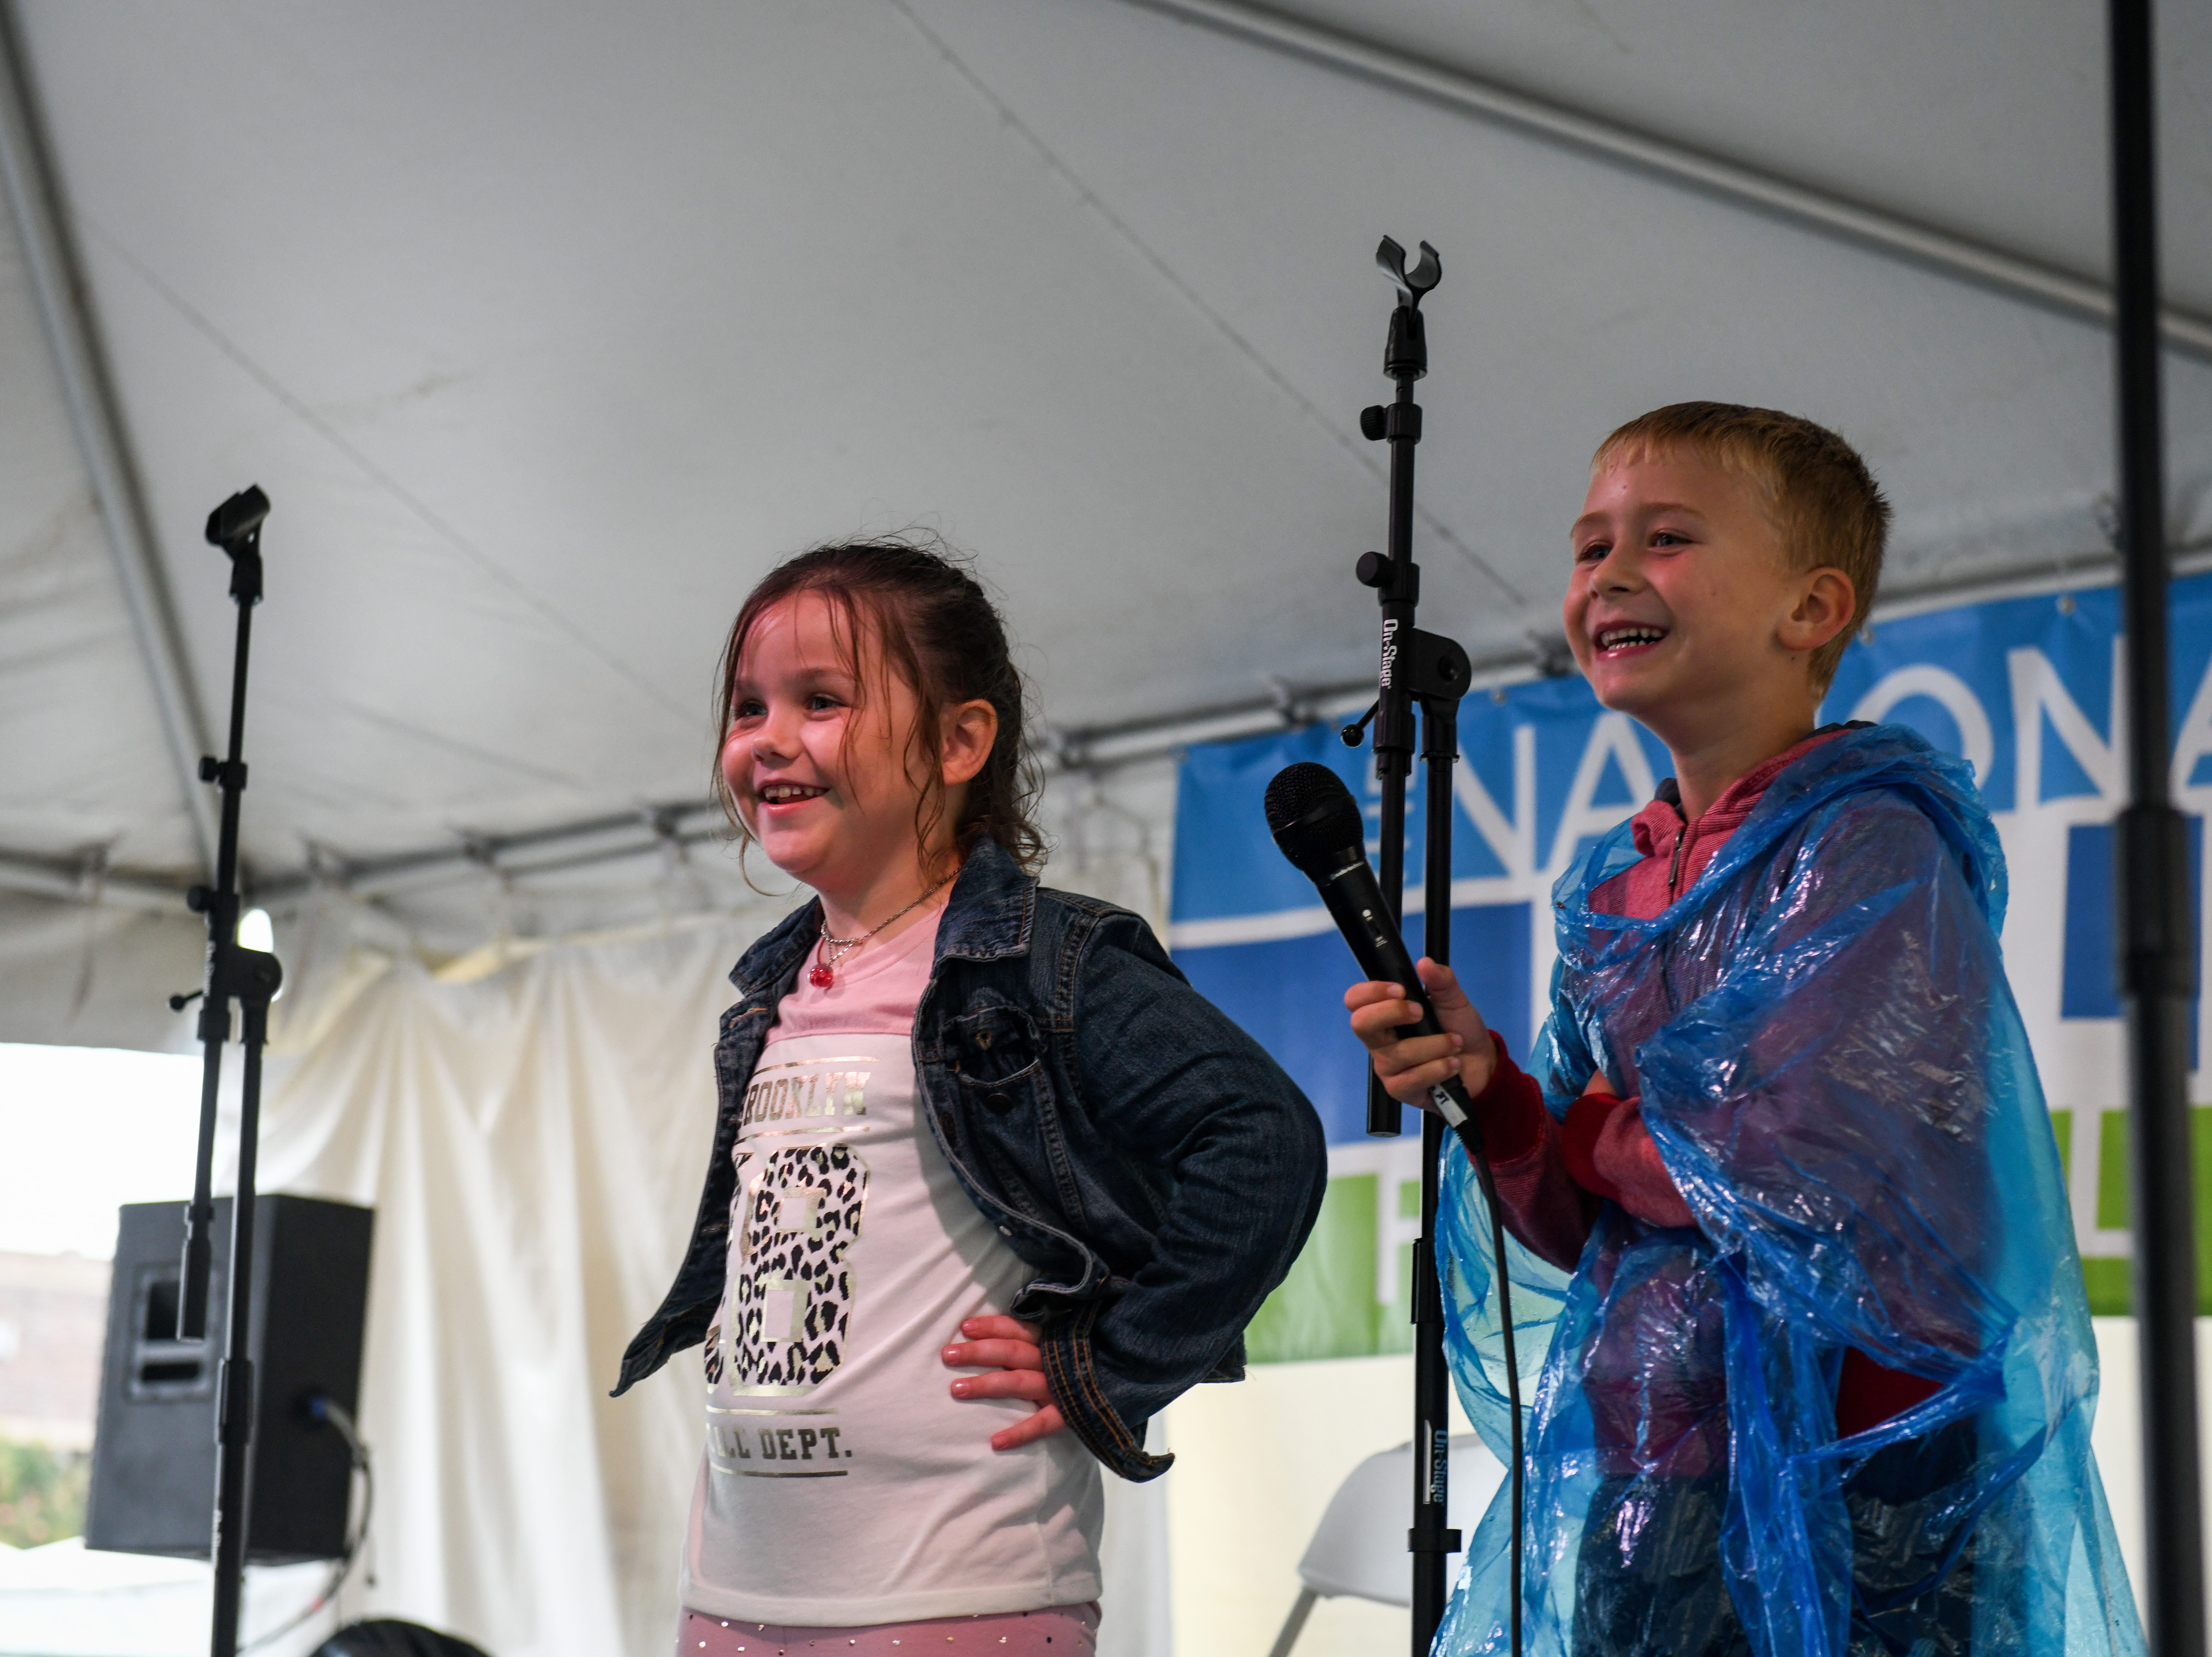 Ruby Ludwick (left) and Reice Manning learn to beatbox with performer Shodekeh at the National Folk Fest in Salisbury on Sunday, Sept. 9.